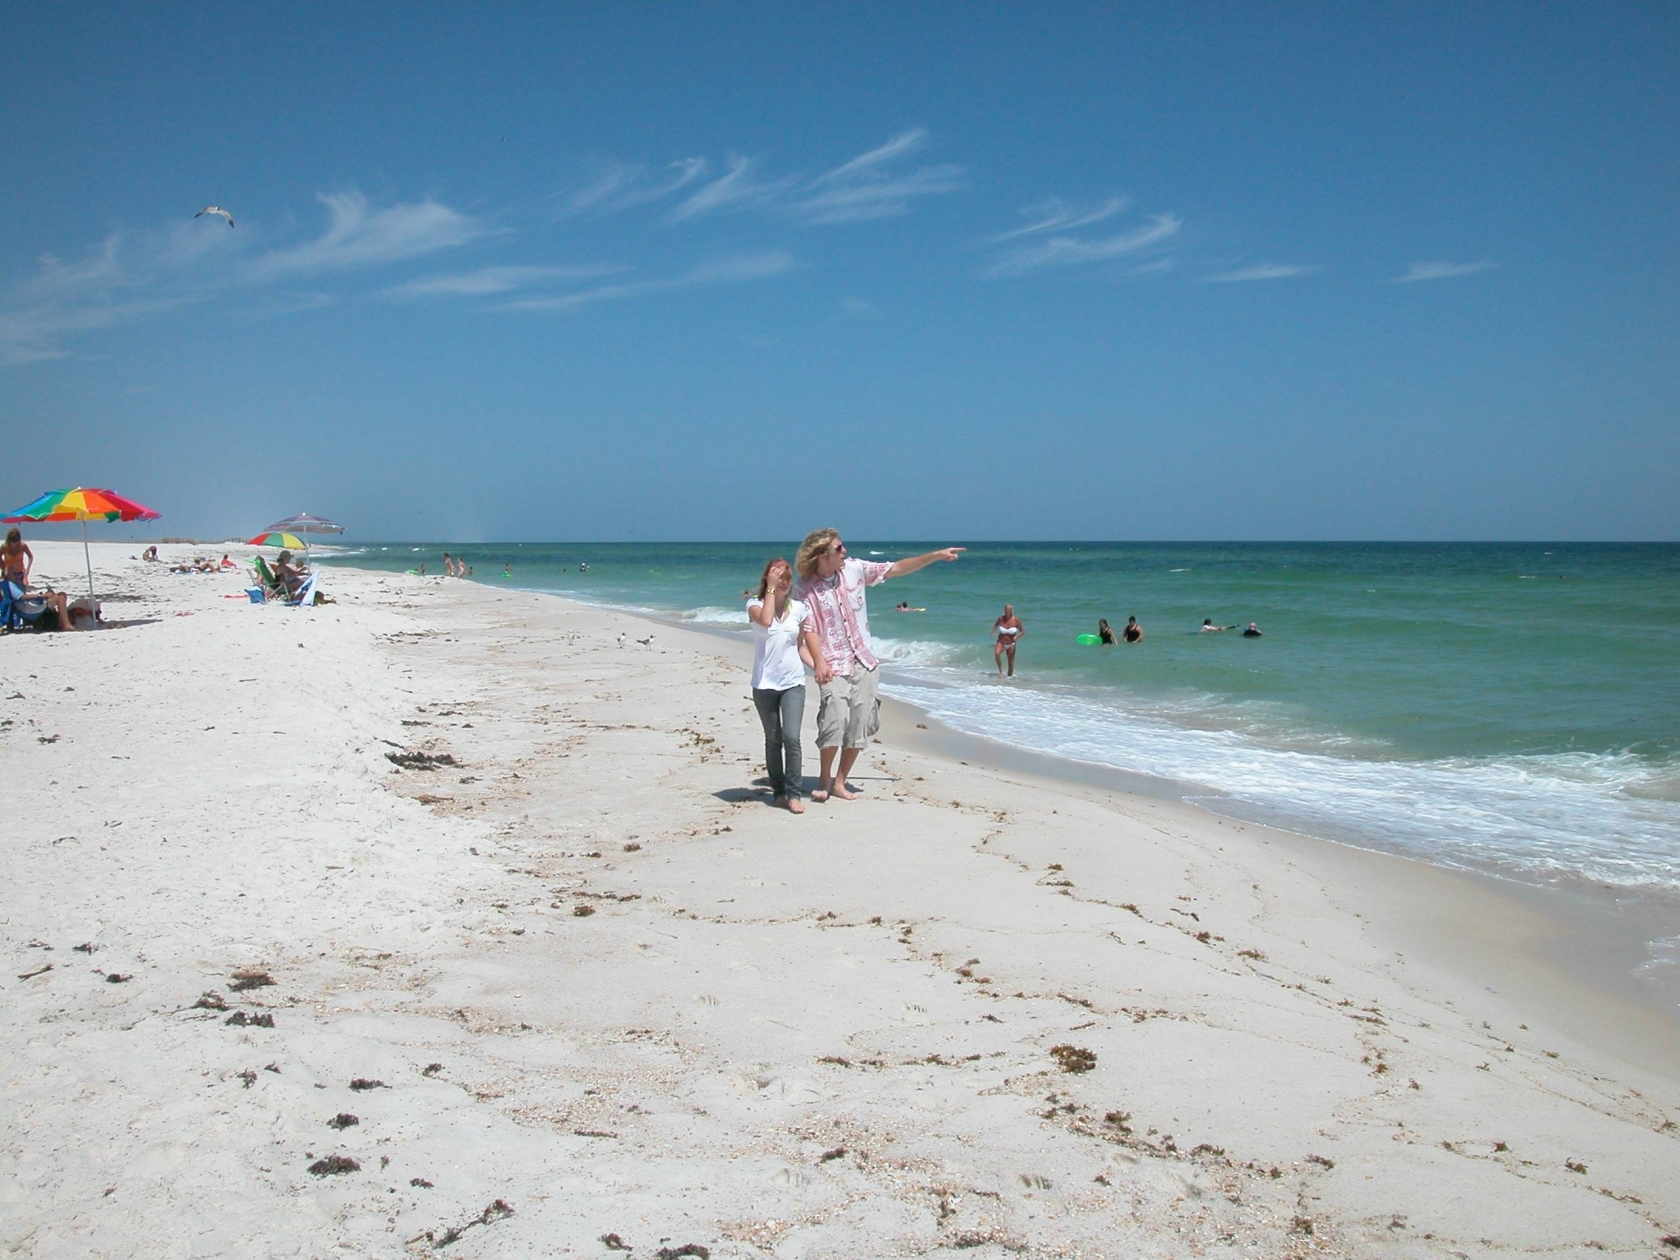 Woman walking next to a man pointing out to the ocean while walking on the sandy beach of the Gulf Islands National Seashore